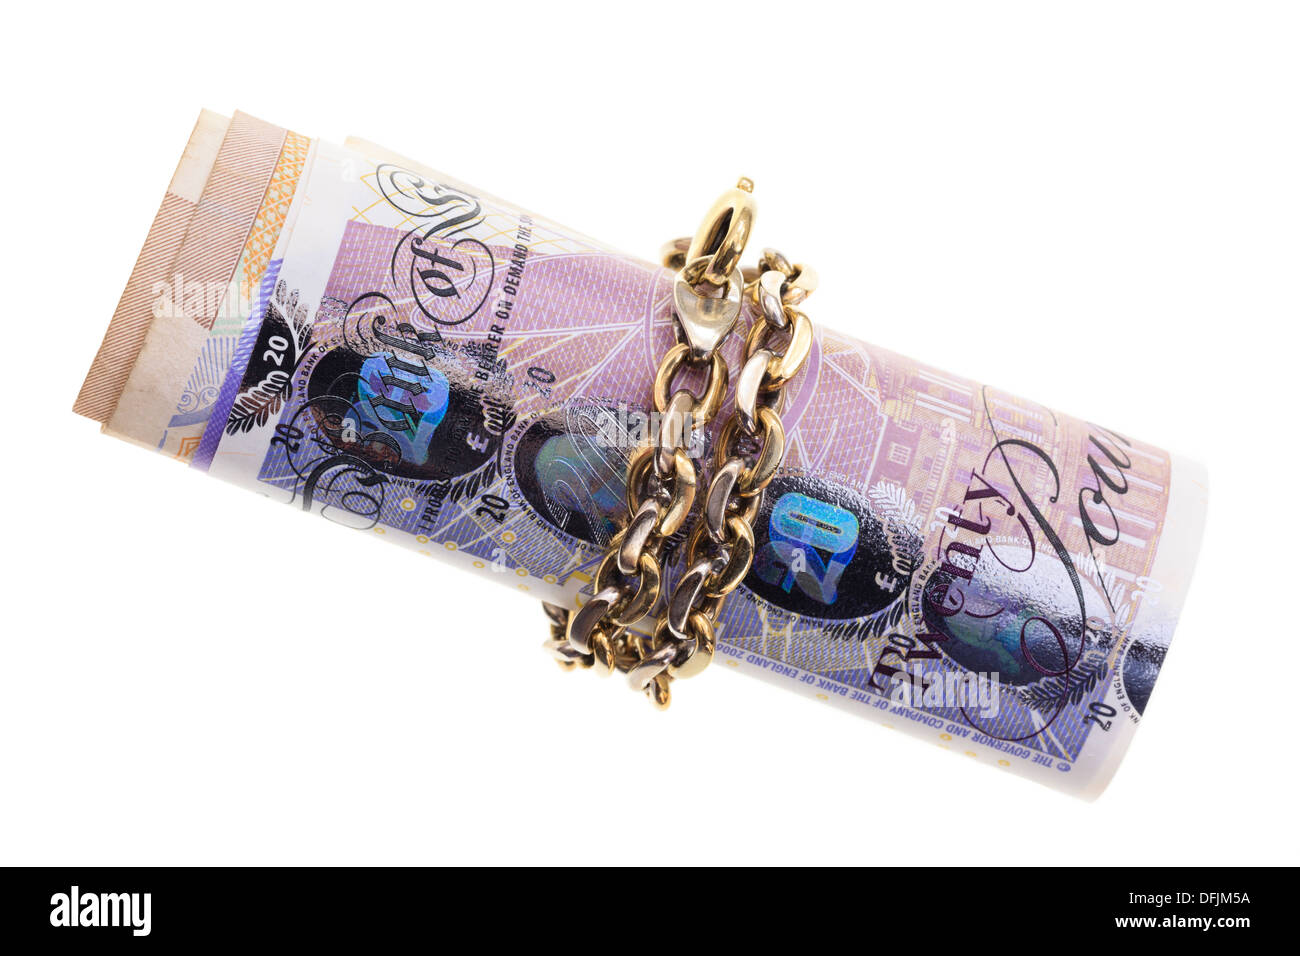 UK Sterling pound notes tied up in gold chain isolated on a white background, saving money and investments concept. - Stock Image